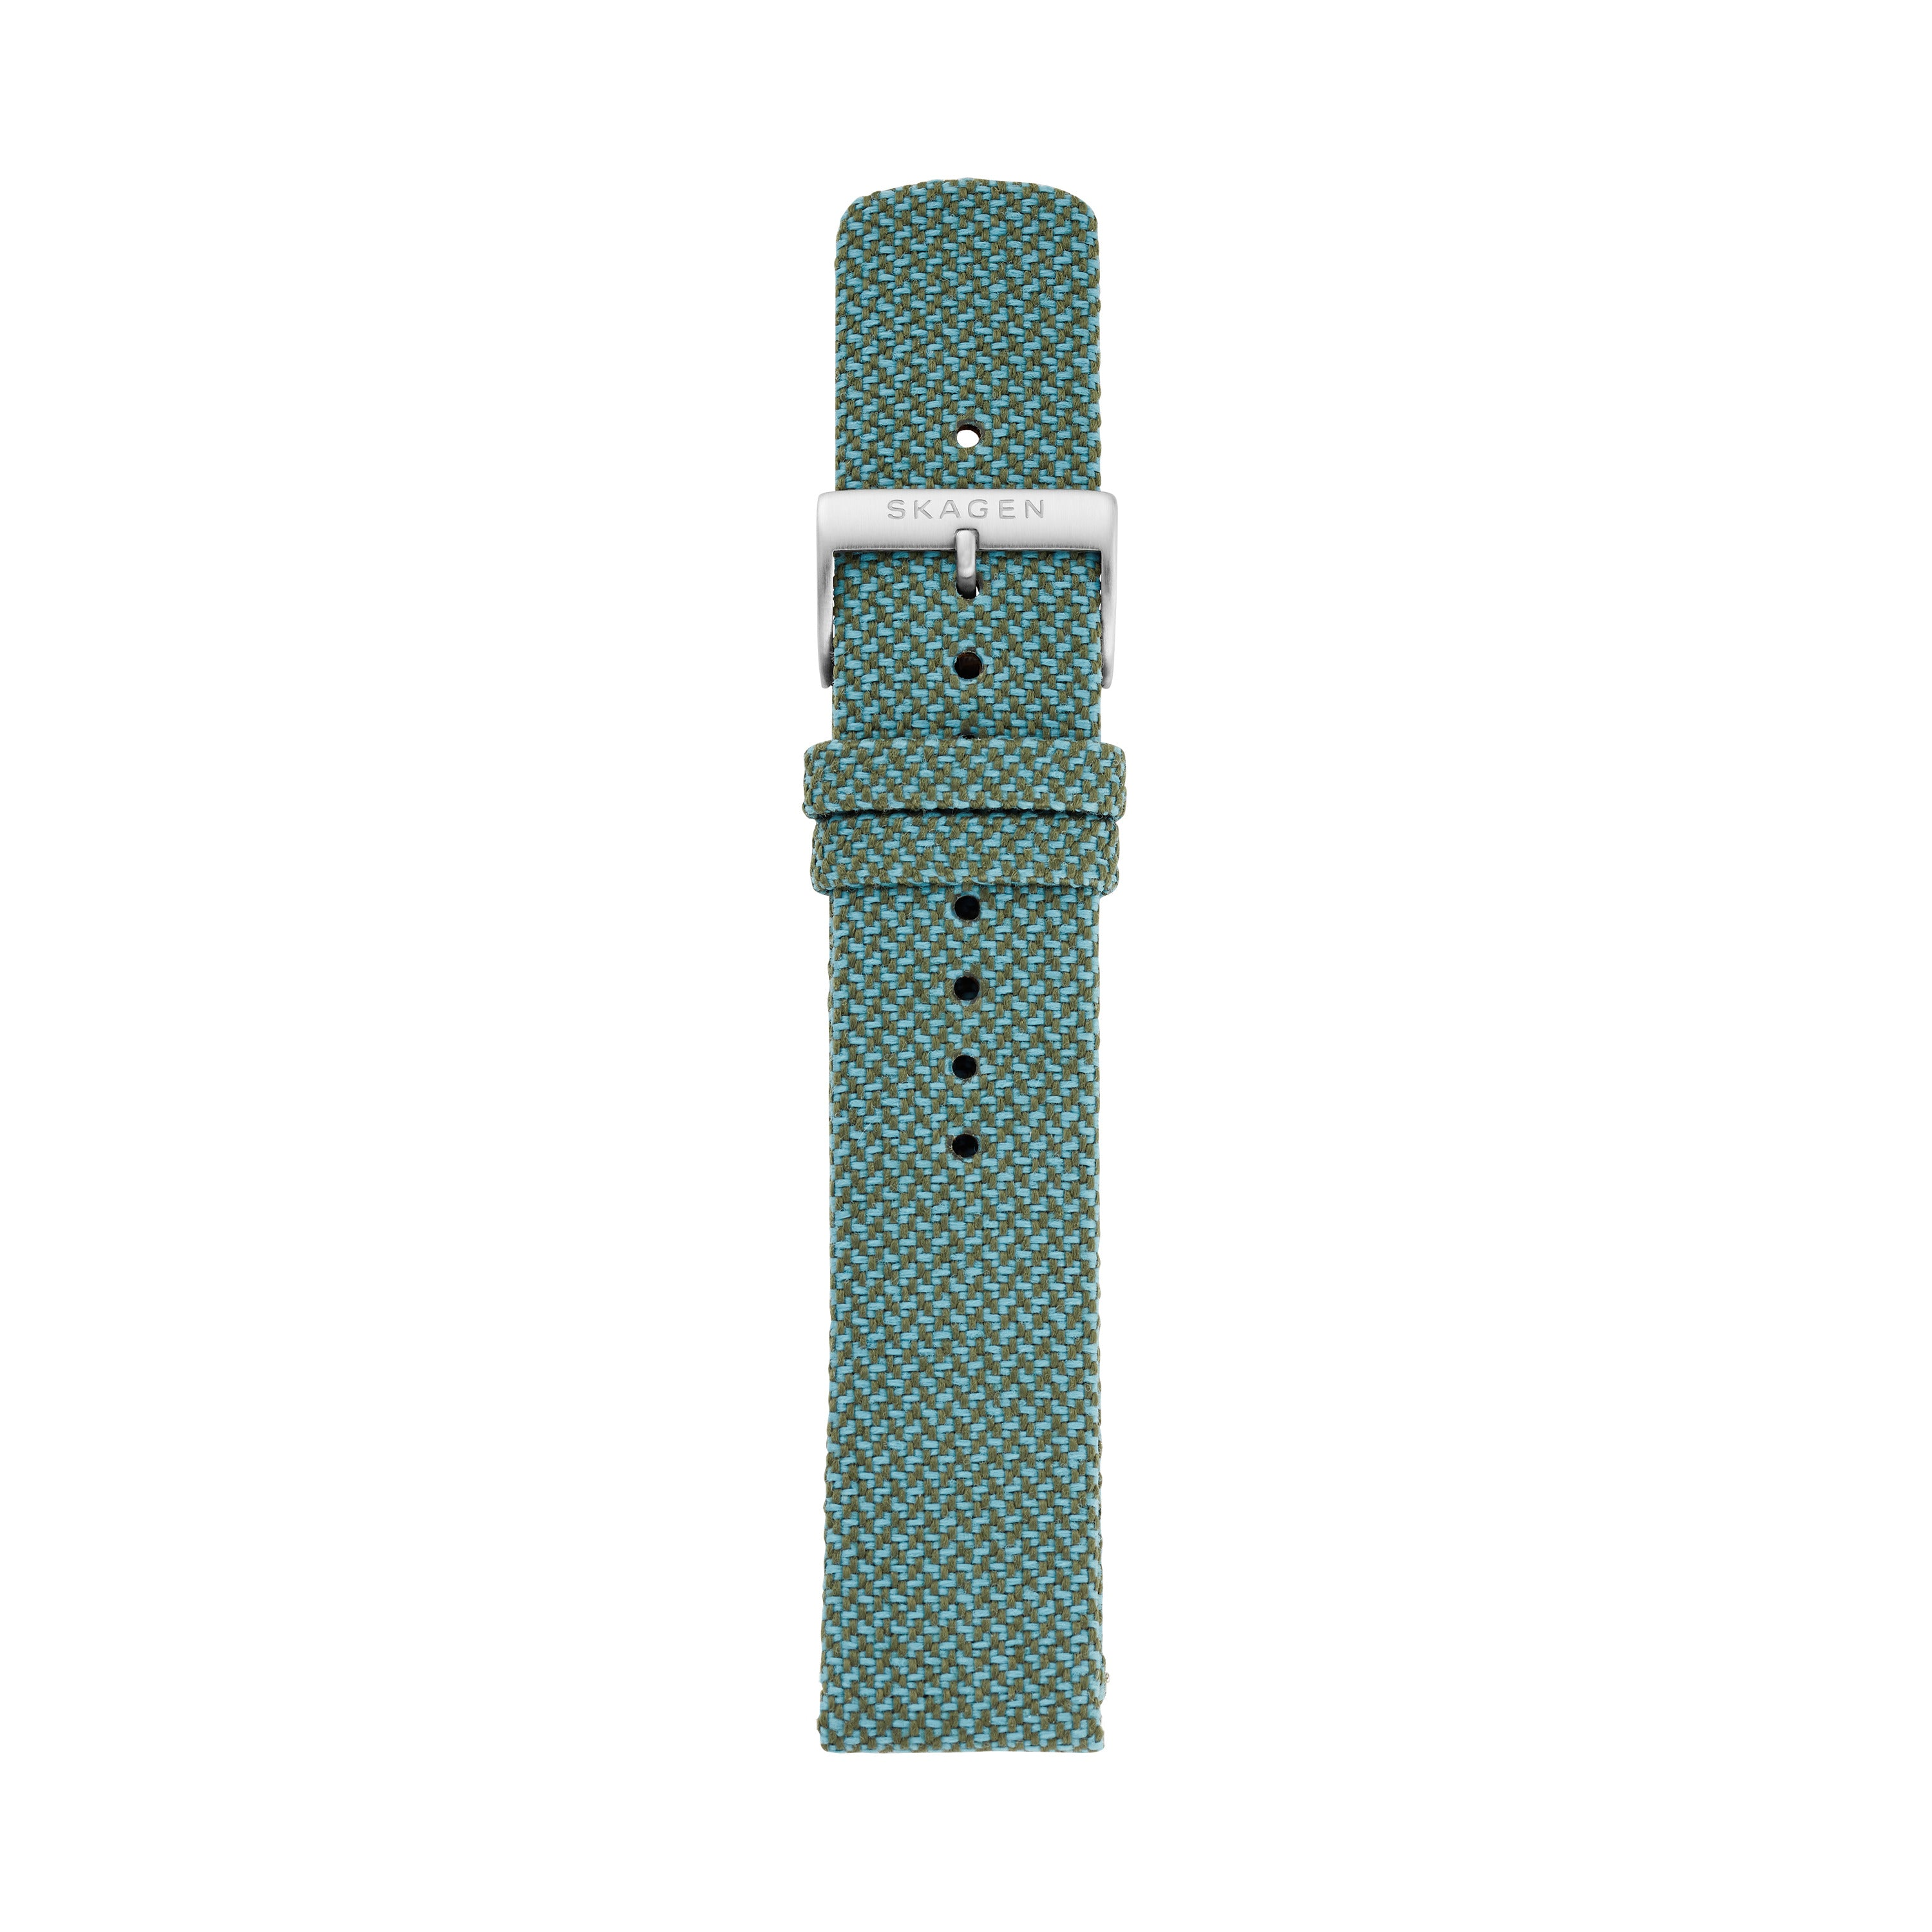 20mm Recycled Woven Strap, Teal